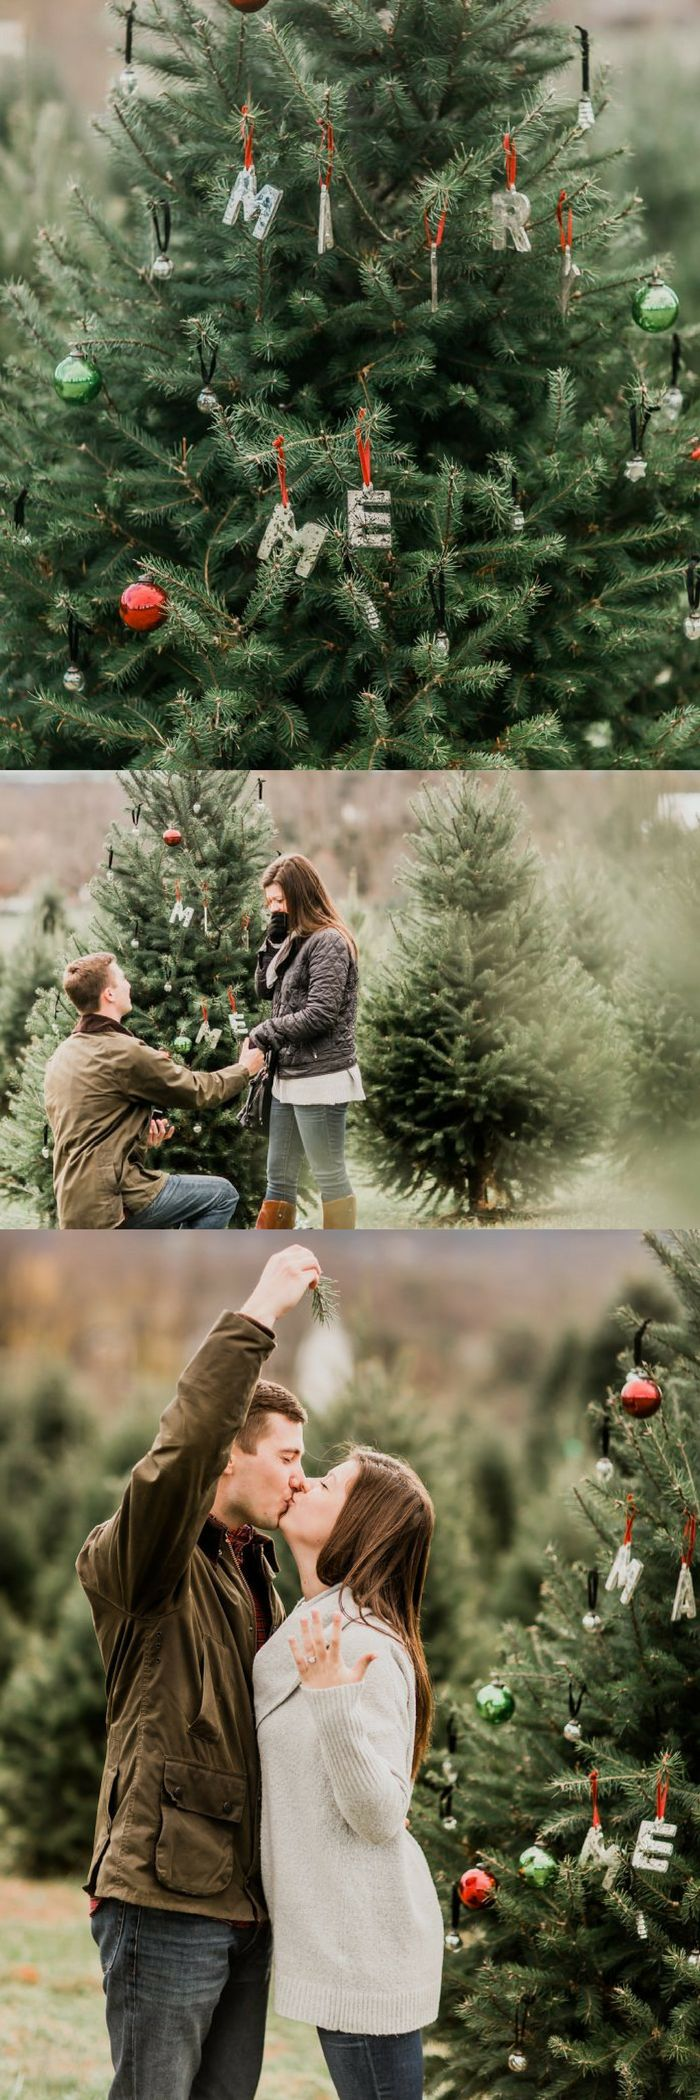 This Christmas tree farm proposal is literally the cutest holiday engagement!